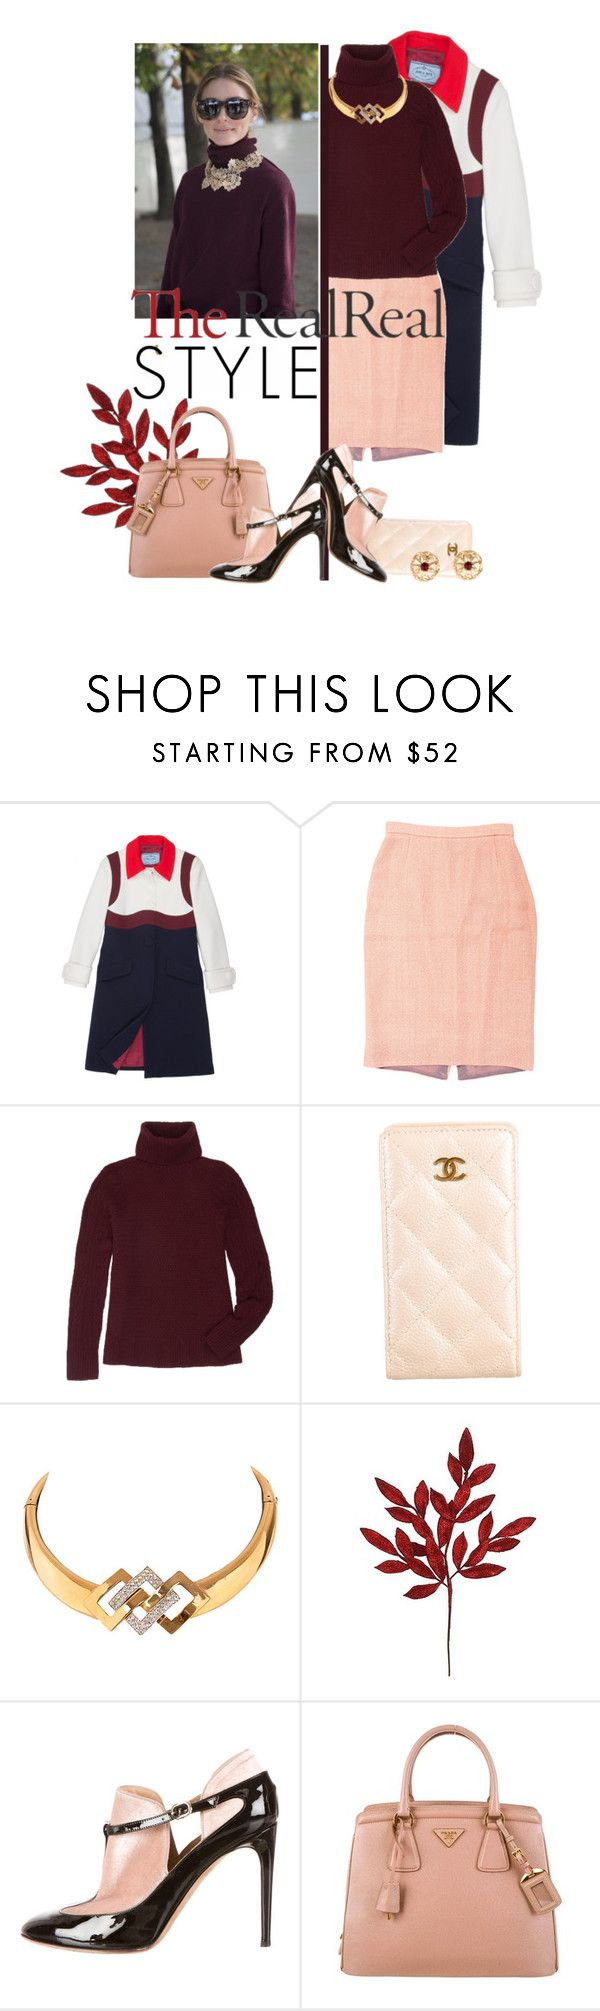 """Fall Style With The RealReal: Contest Entry"" by iraavalon ❤ liked on Polyvore featuring moda, Prada, The Row, Chanel, Valentino i Givenchy"